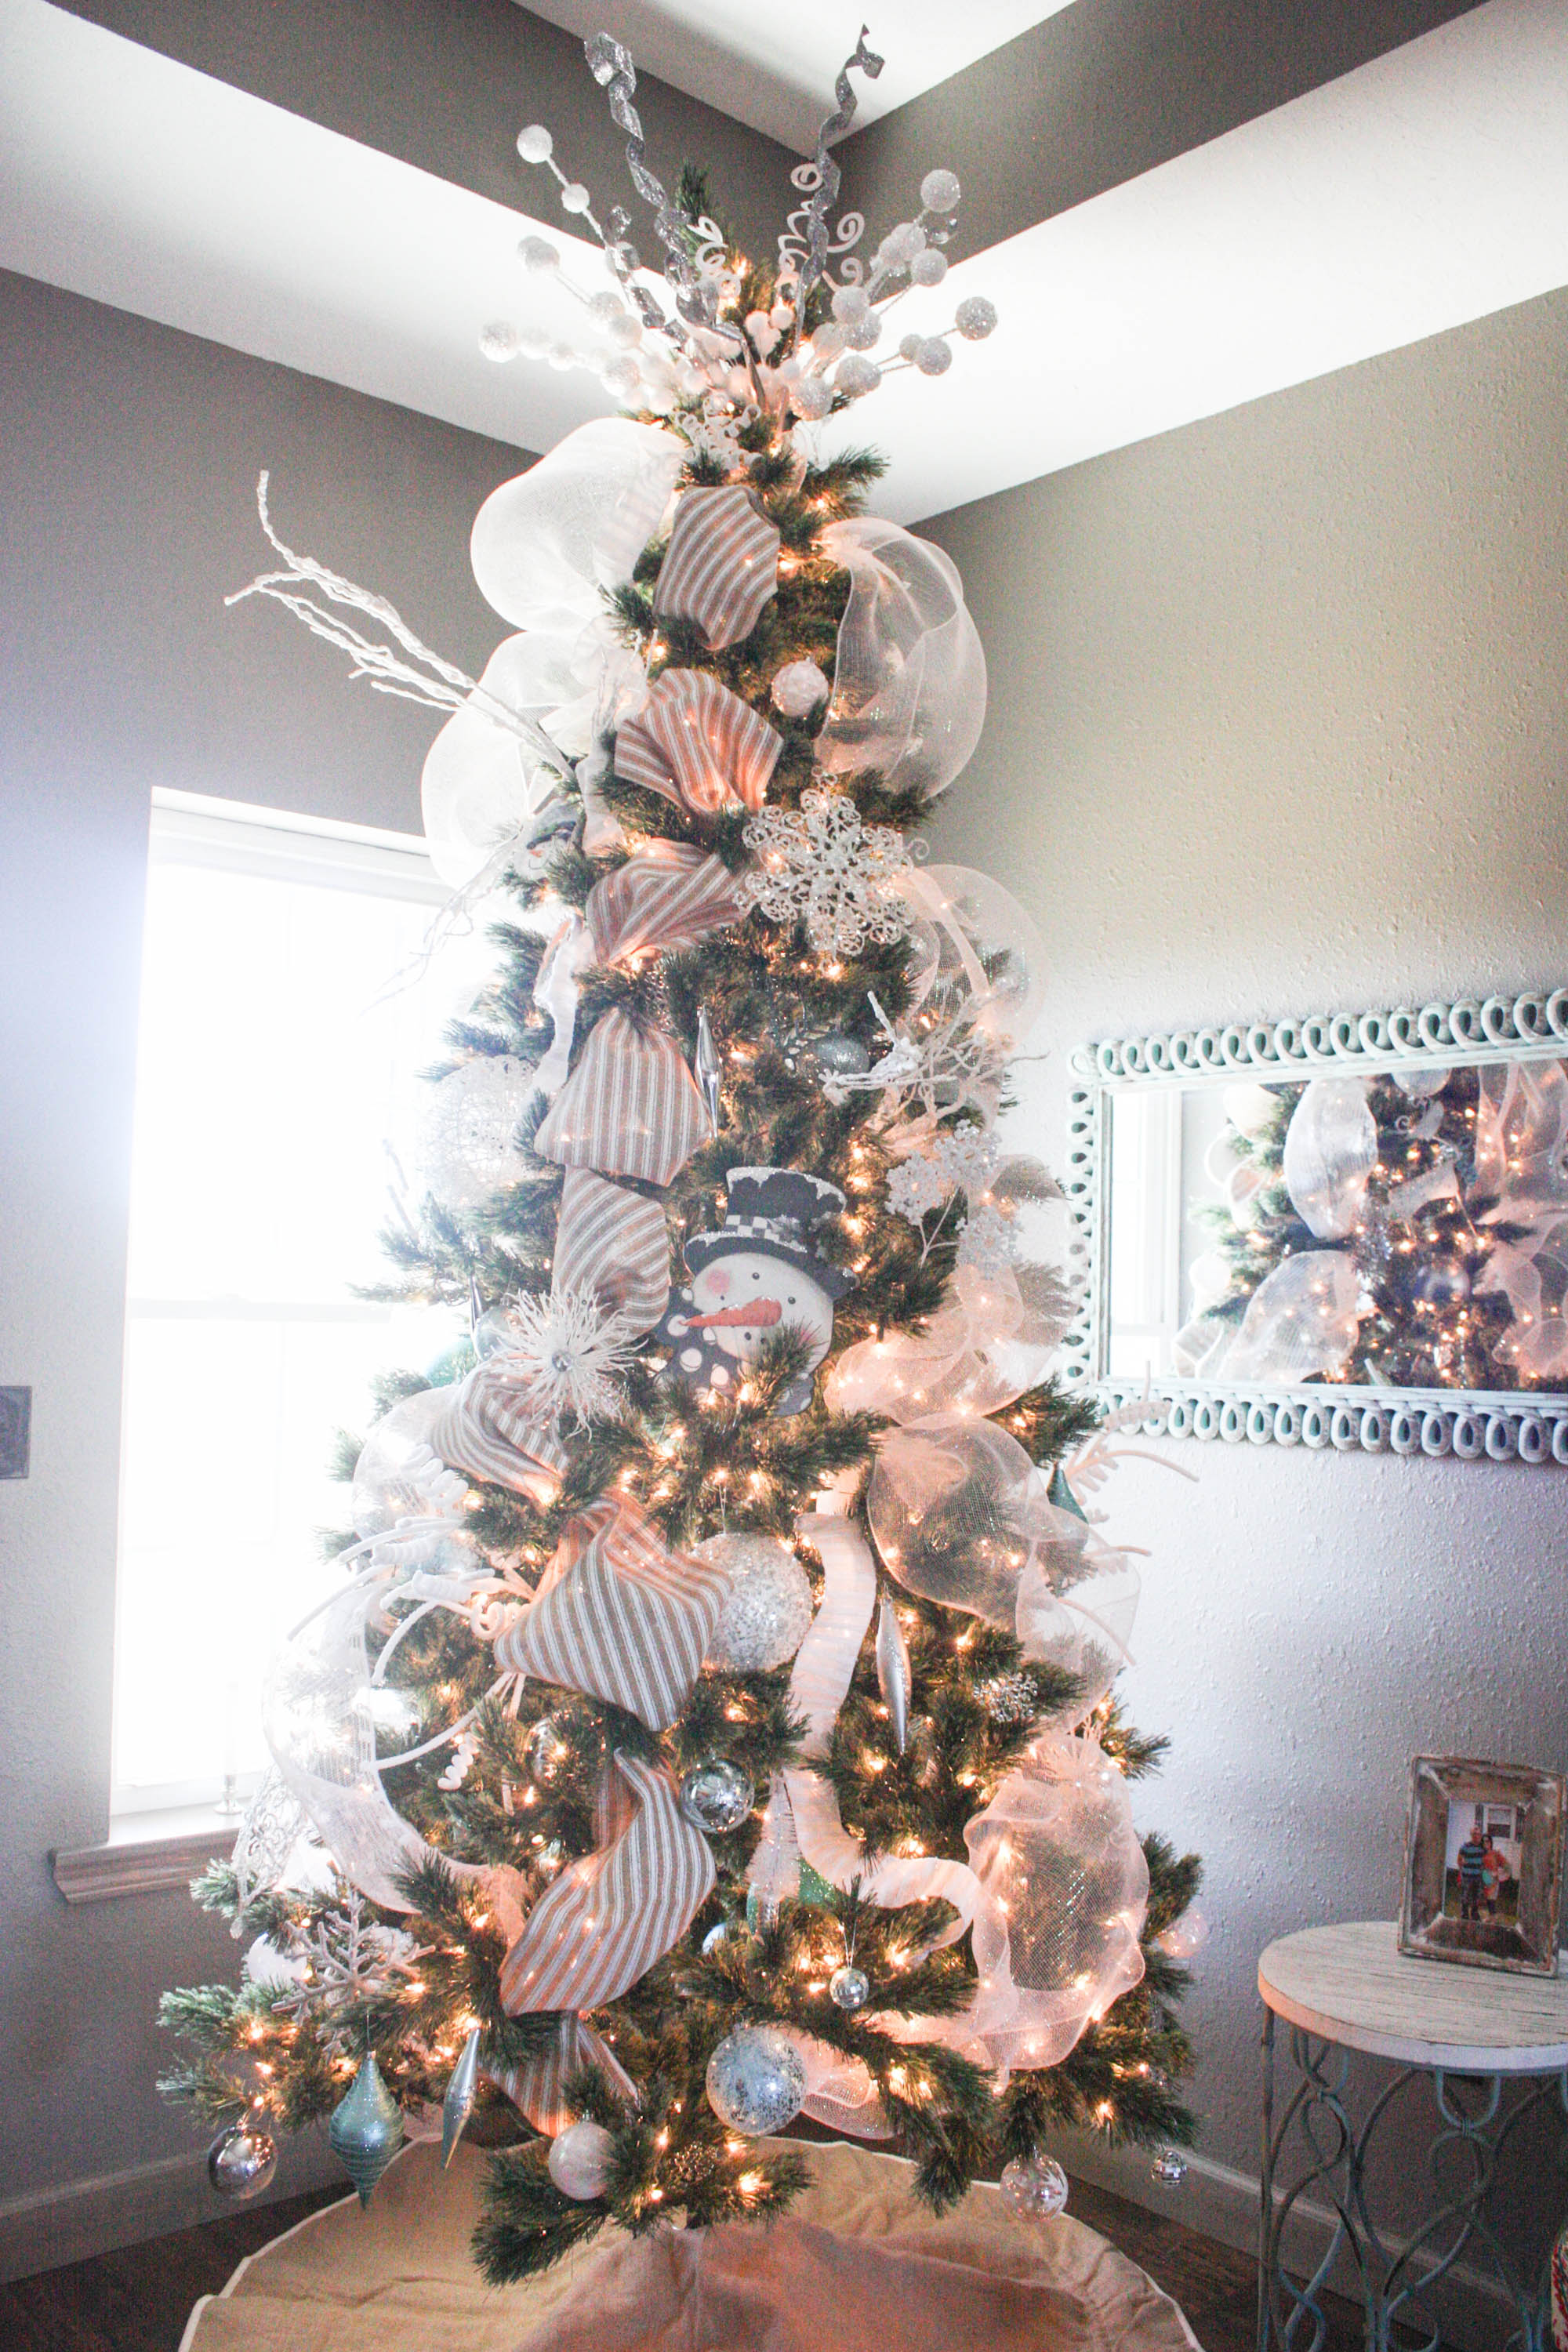 How To Decorate A Christmas Tree From Start To Finish The Easy Way Re Fabbed